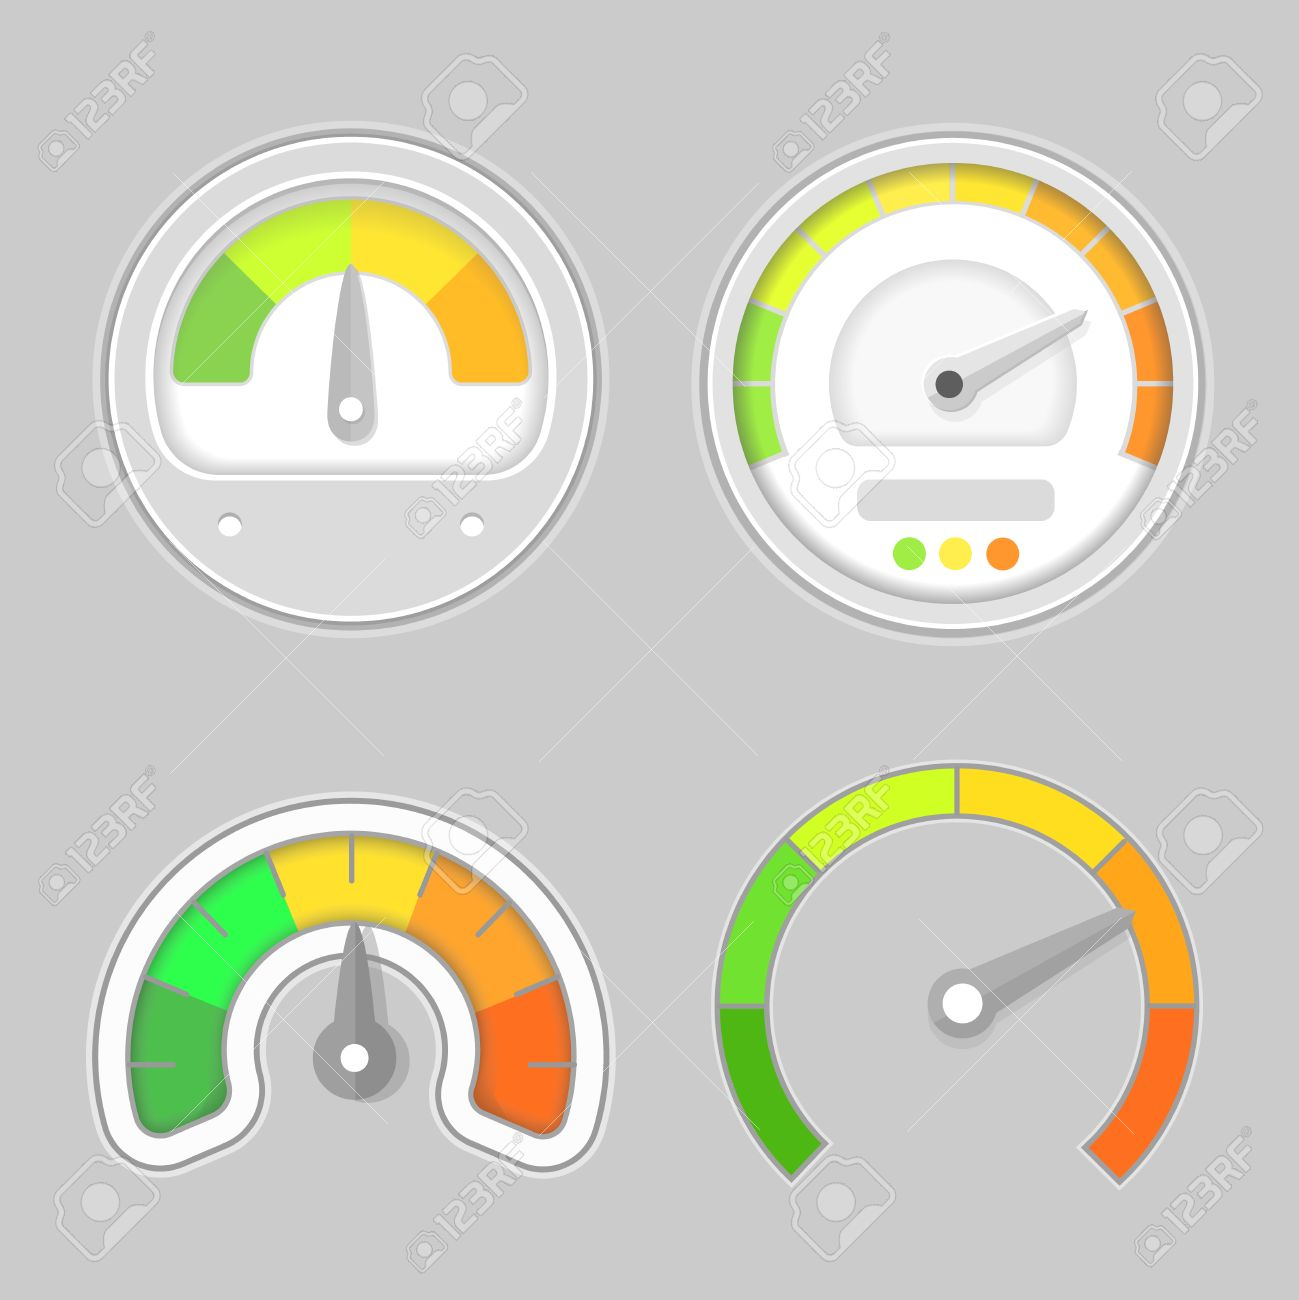 gauge meter element speed meter icon or sign with arrow dashboardgauge meter element speed meter icon or sign with arrow dashboard indicate, panel